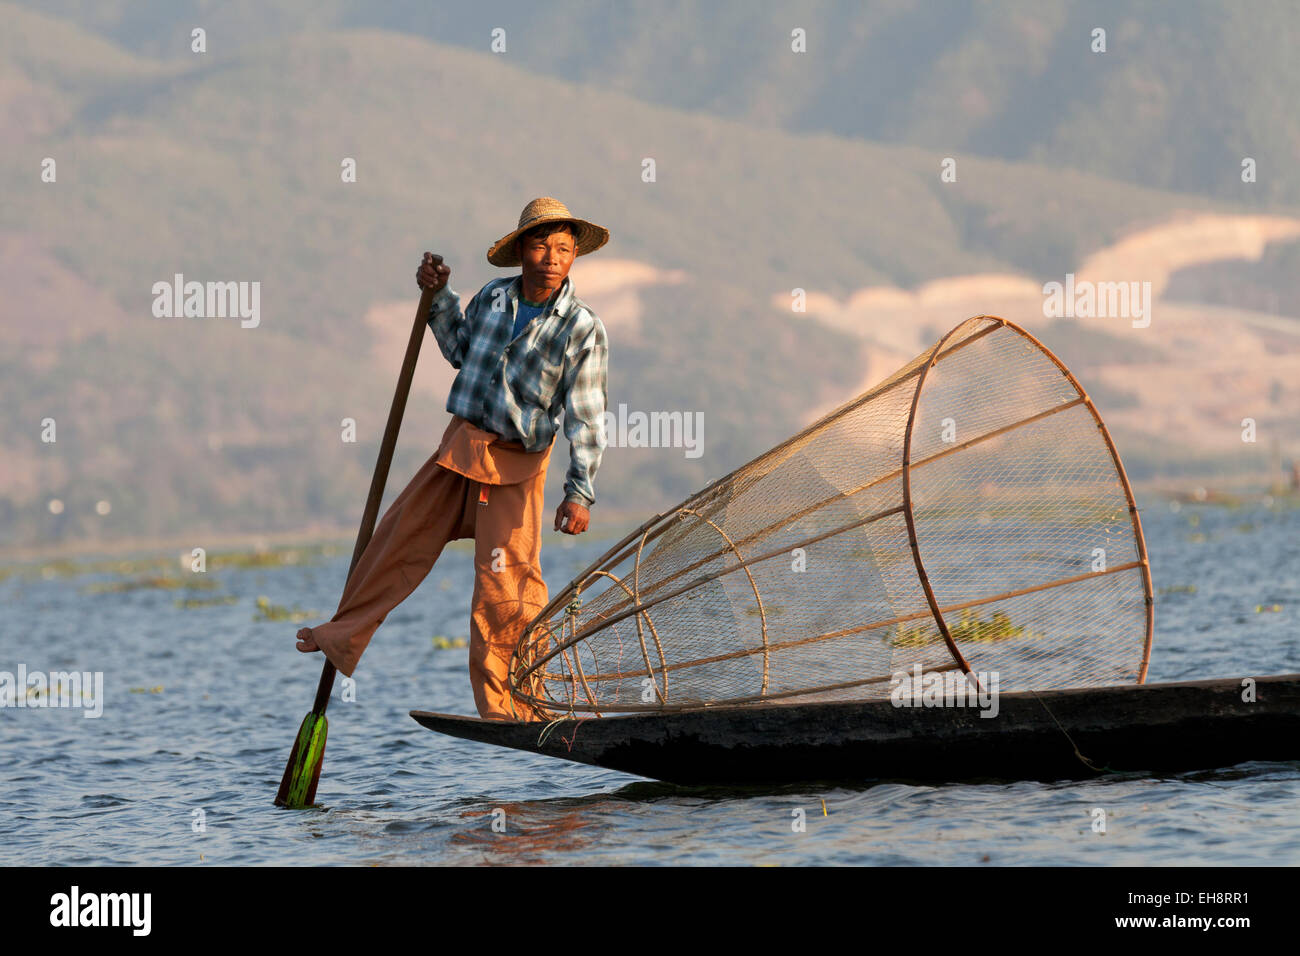 Leg rowing fisherman with cone shaped net; Inle Lake, Myanmar ( Burma ), Asia - Stock Image